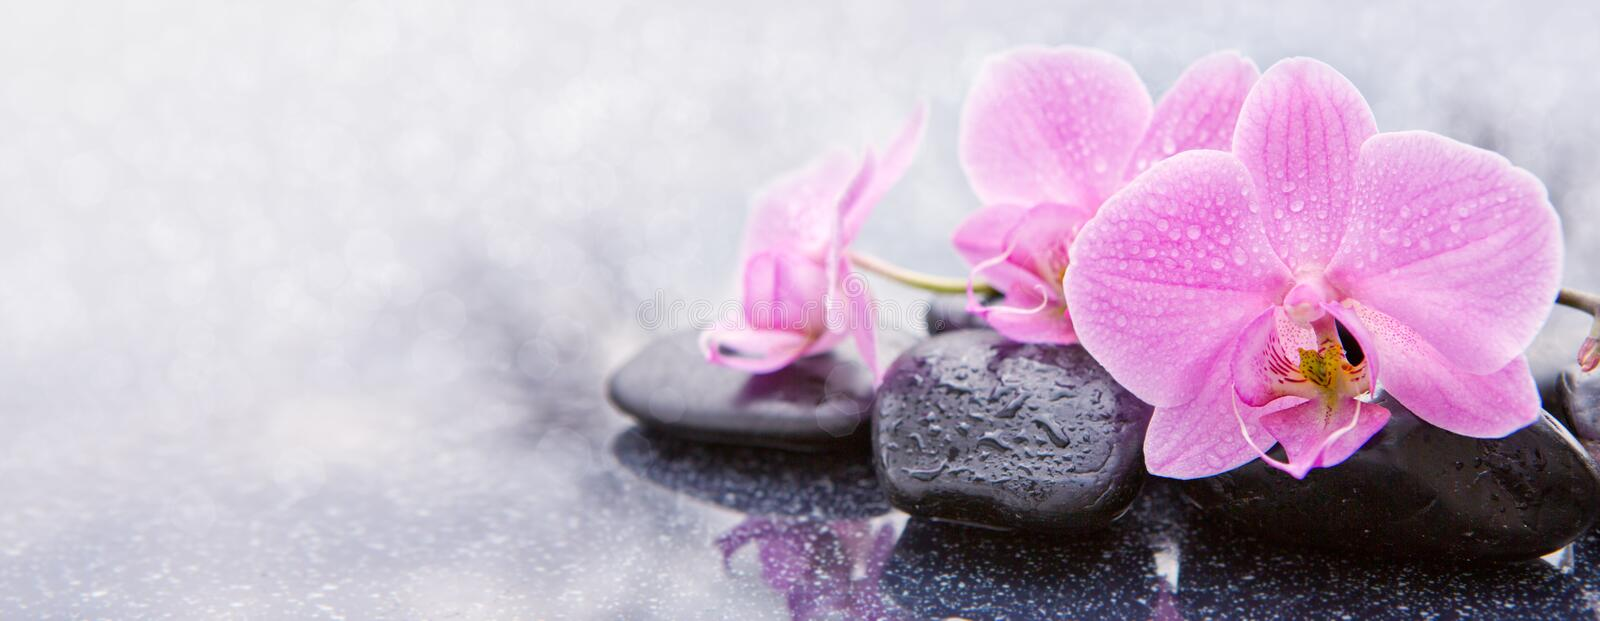 Pink orchid and spa stones . Pink orchid flower and stone with water drops on black background stock images